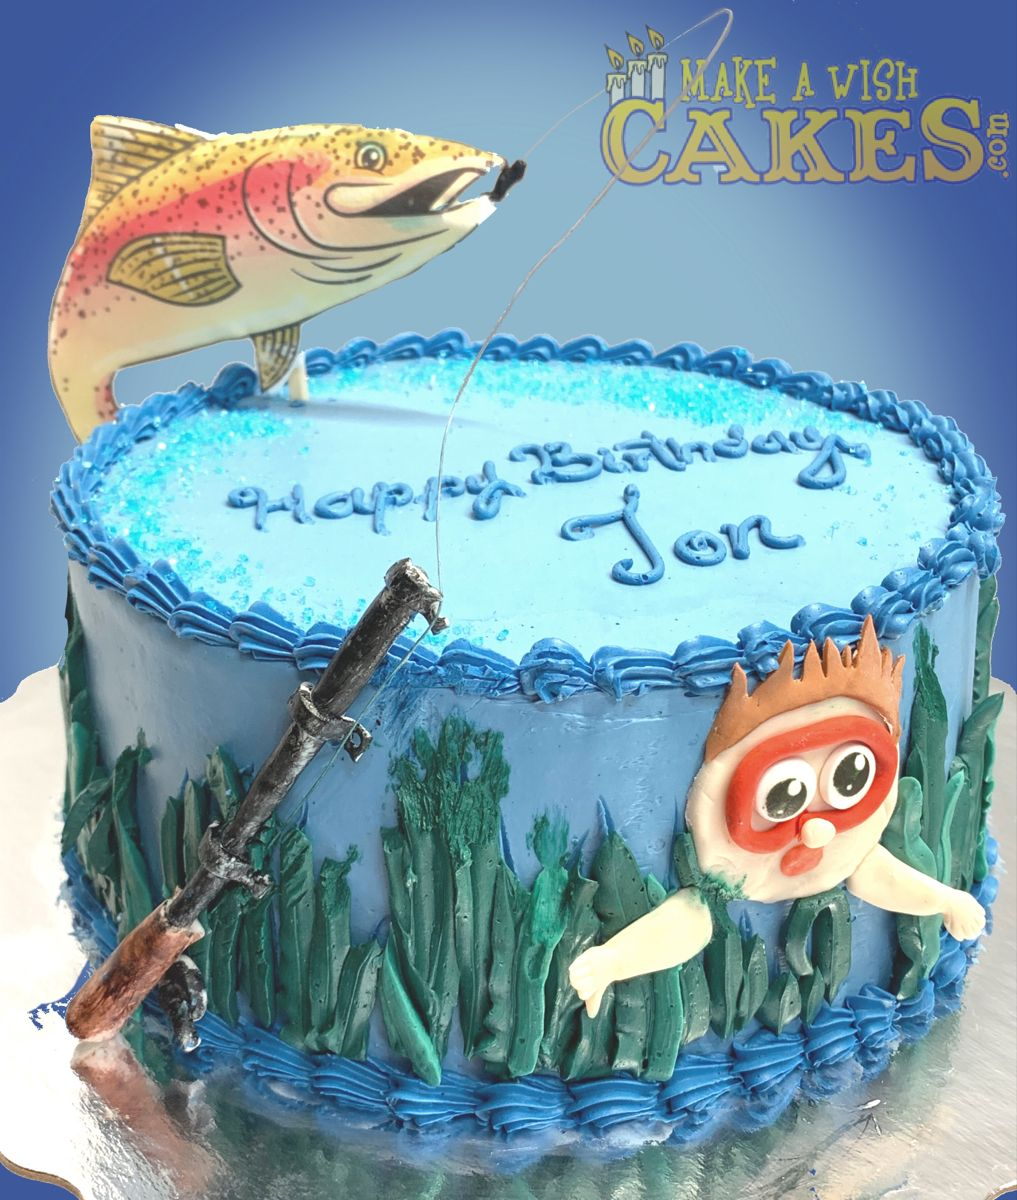 🎣 OMGosh how fun is this! I love the fish on this one! #fishing #swimming #themecakes #makeawishcakes